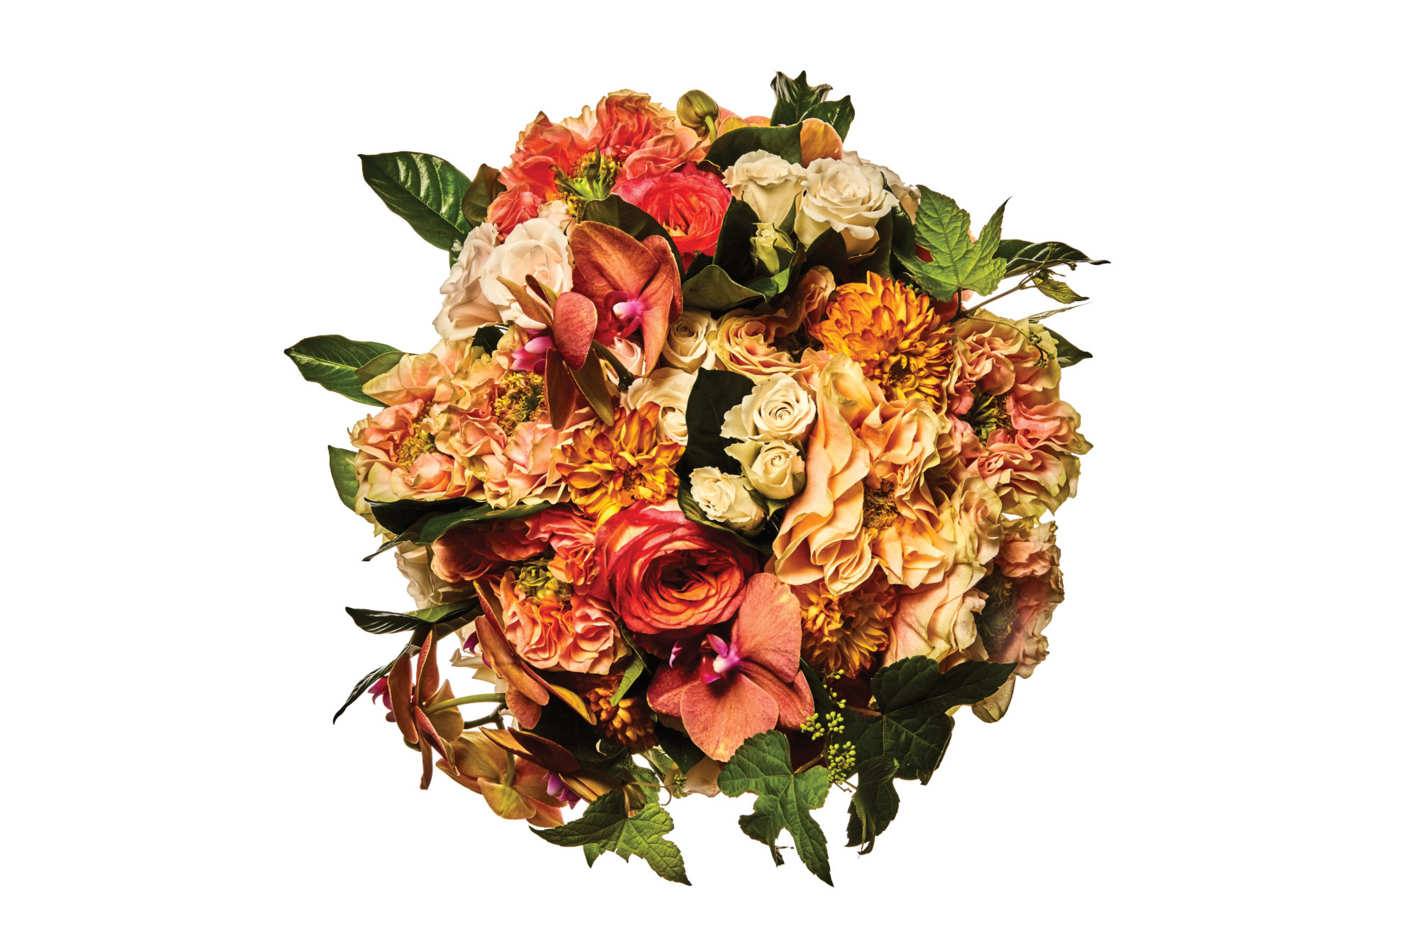 Houdini and Copperfield roses, Majolica spray rose, dahlia, phalaenopsisorchid, gardenia leaf, and wild grape leaf